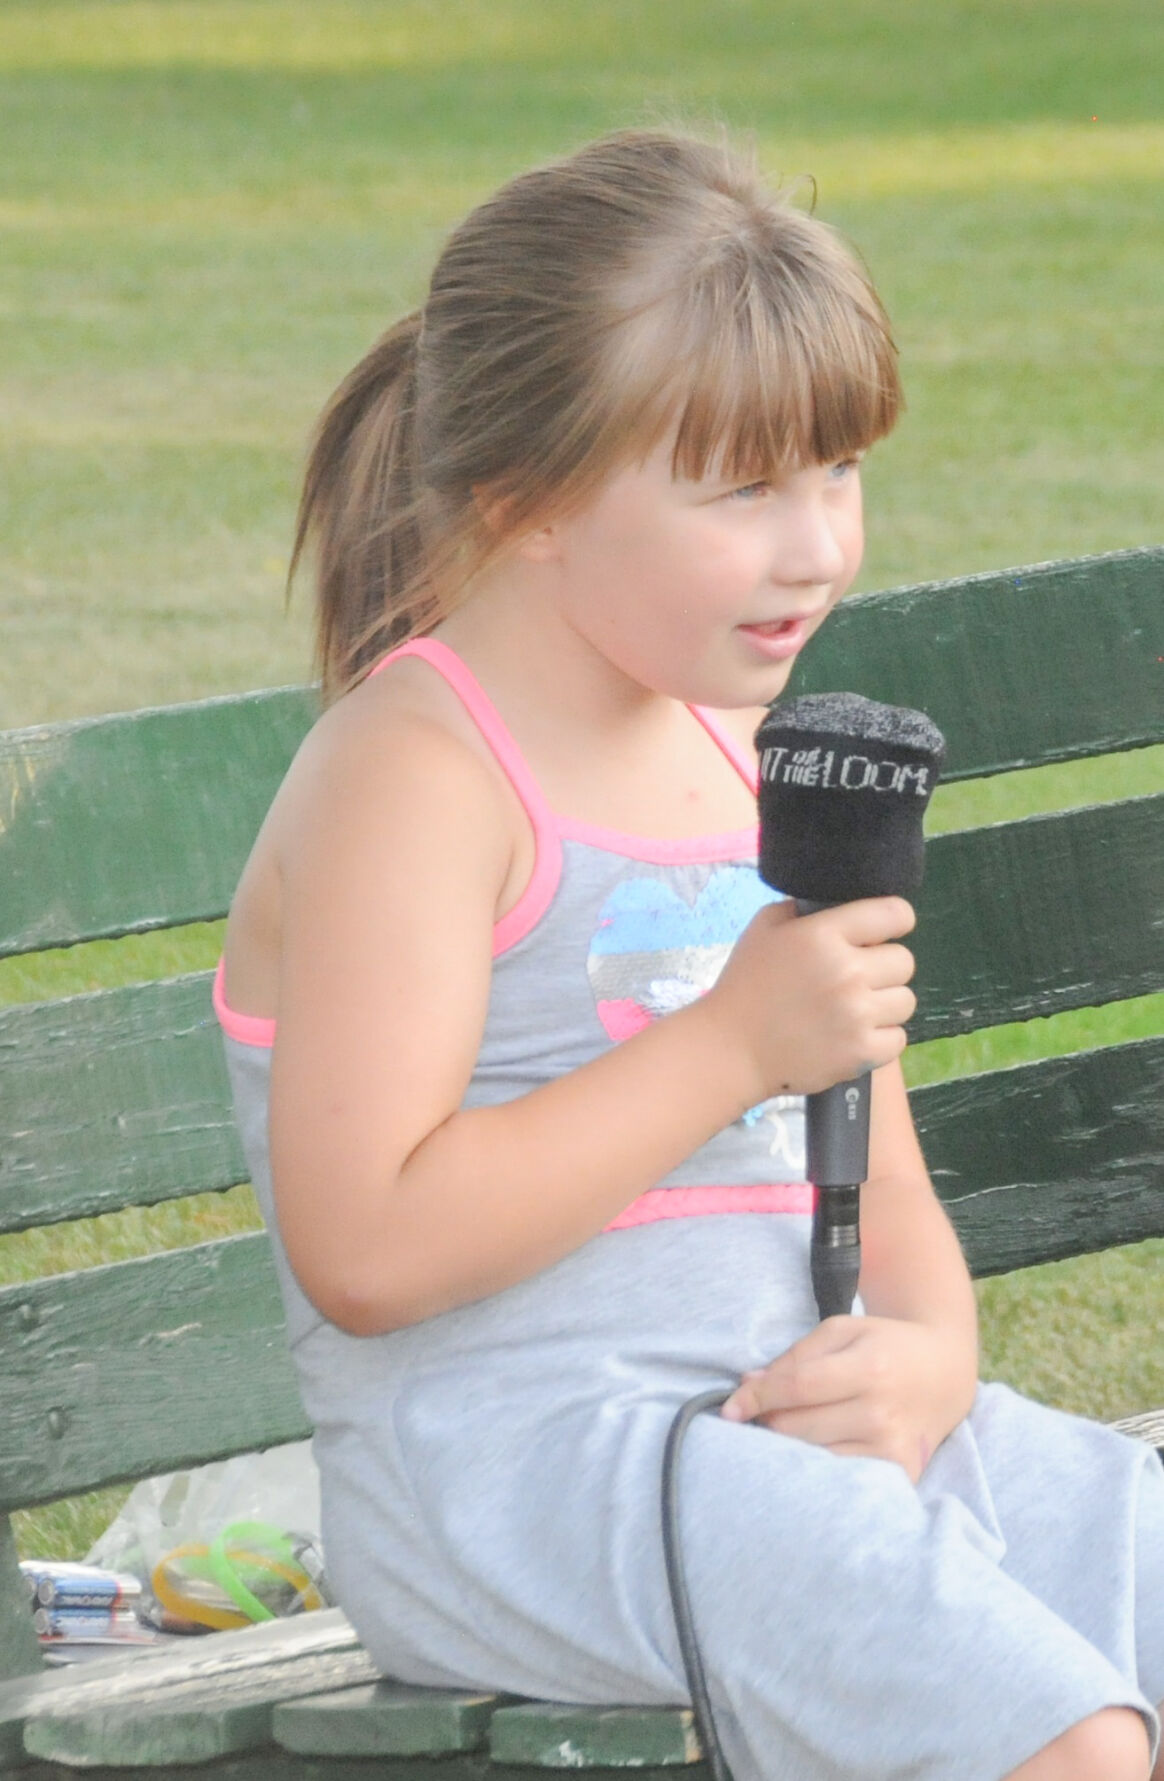 Cottonwood concert in the park photo 2